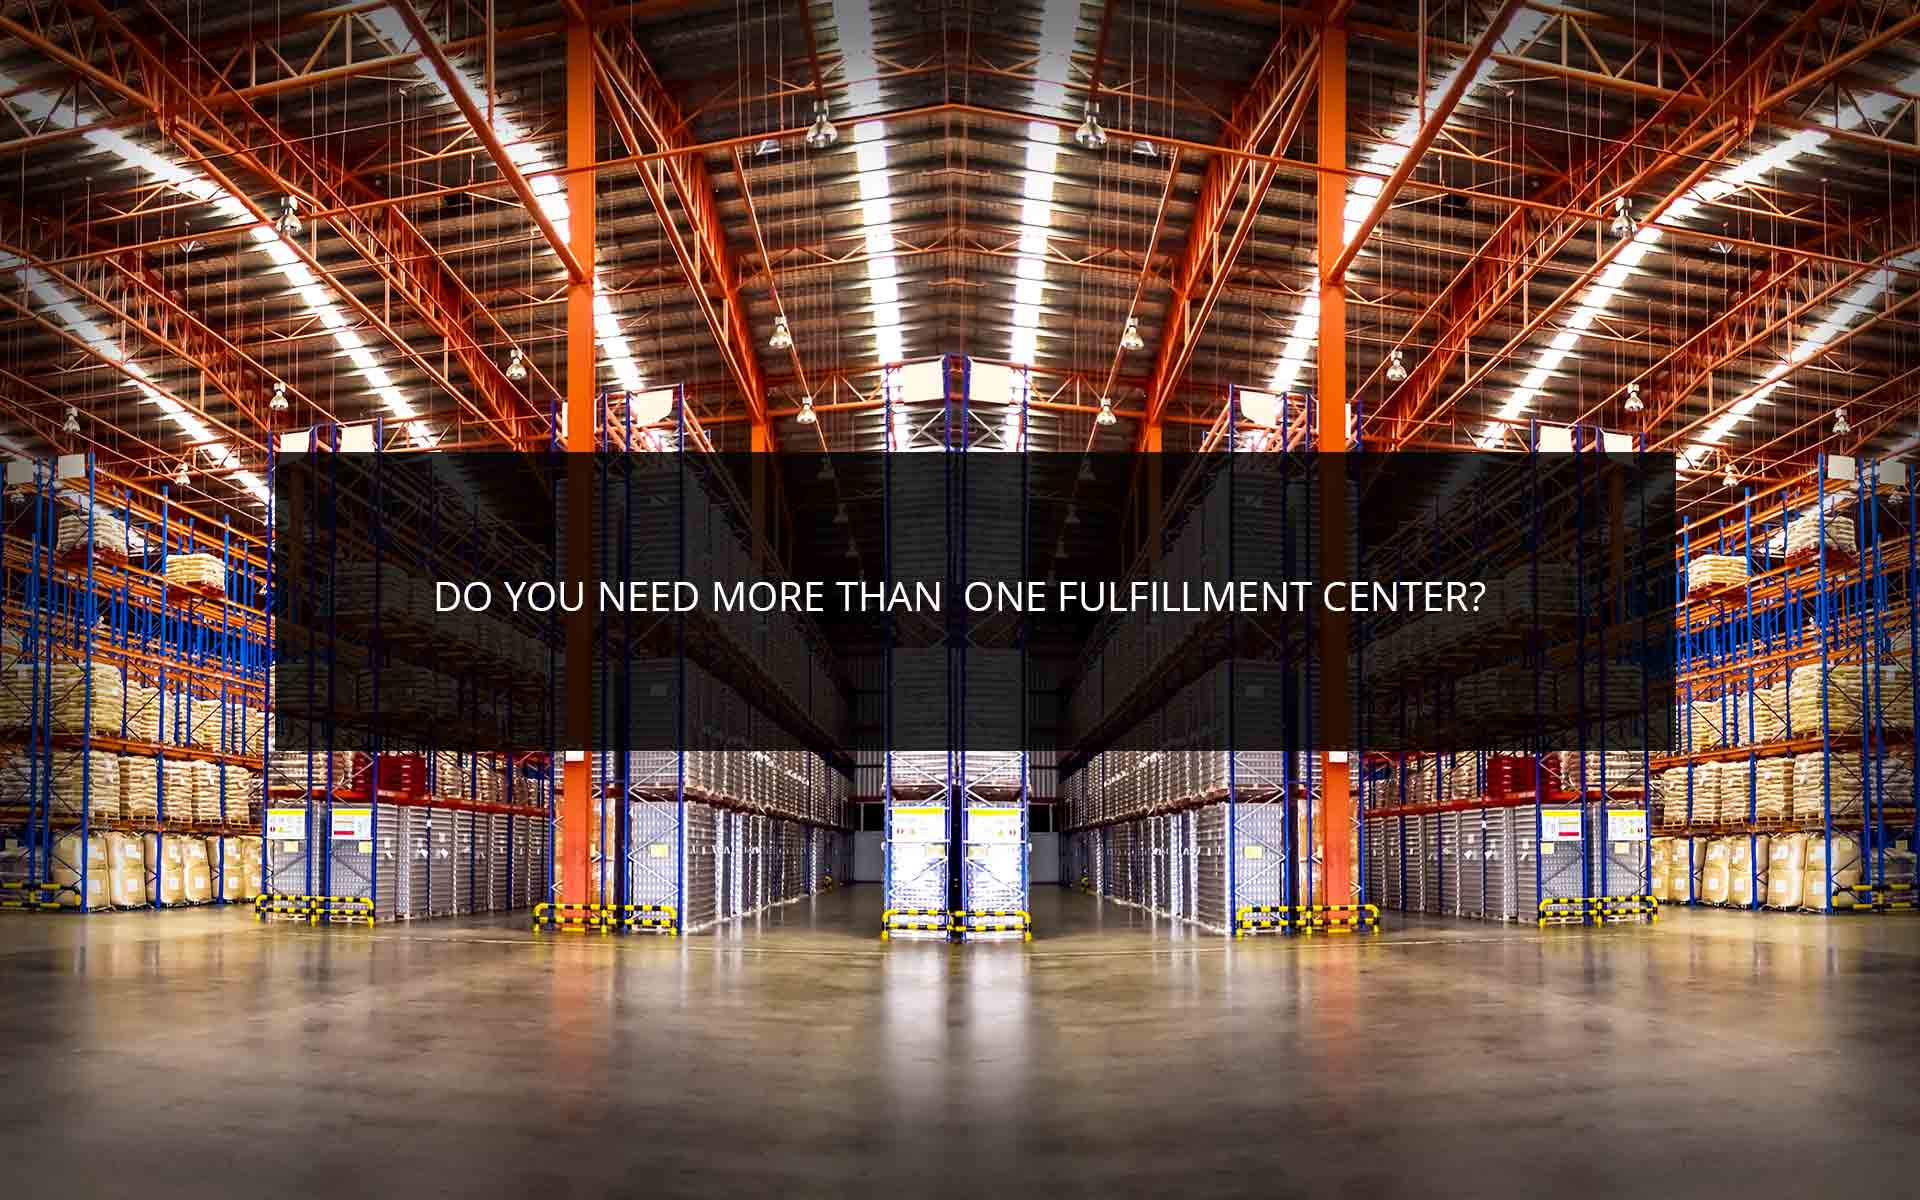 Do You Need More Than One Fulfillment Center?